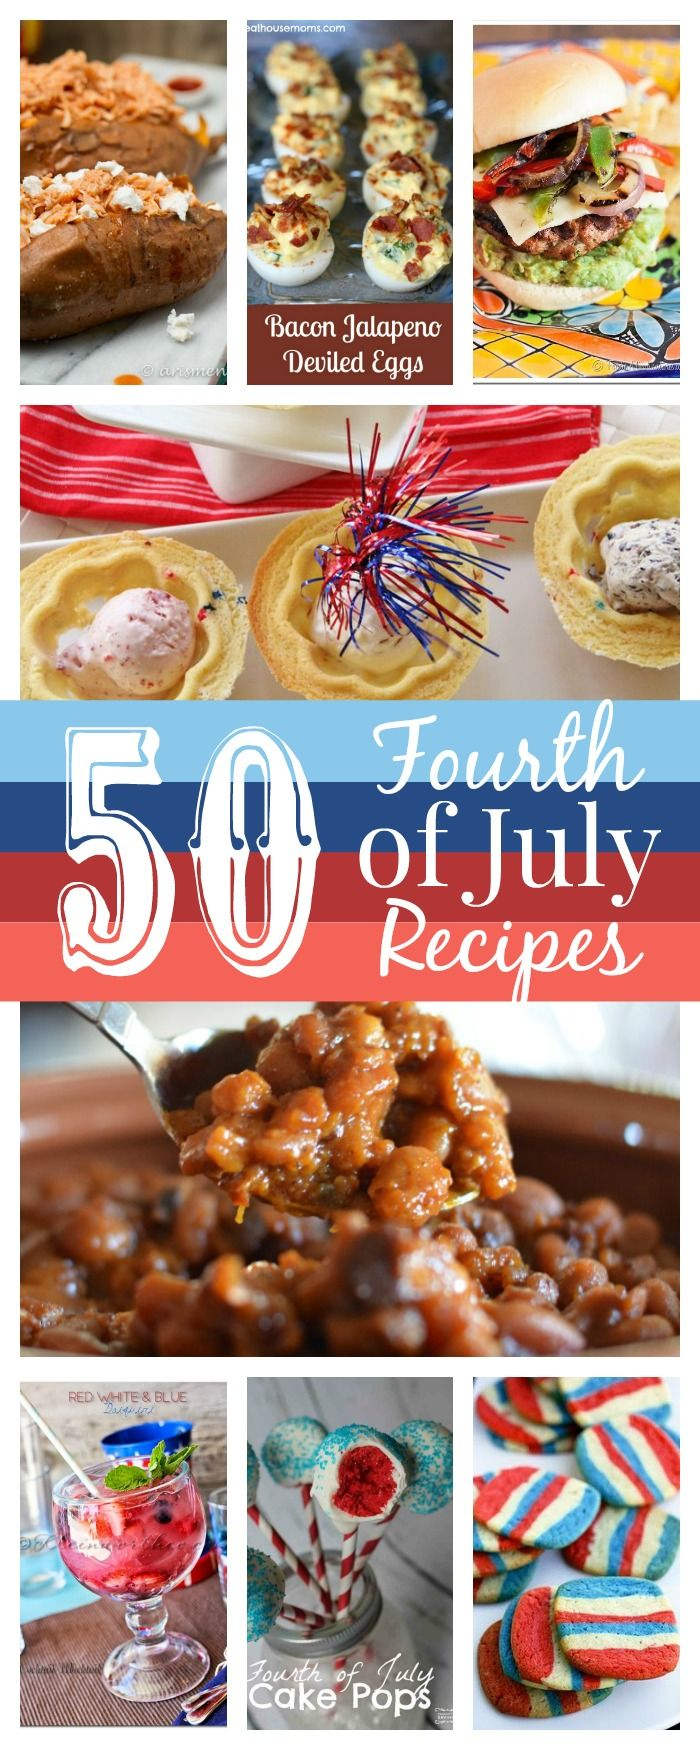 50 Fourth of July Recipes | Real Housemoms | This is a roundup of 50 out of this world Fourth of July recipes!